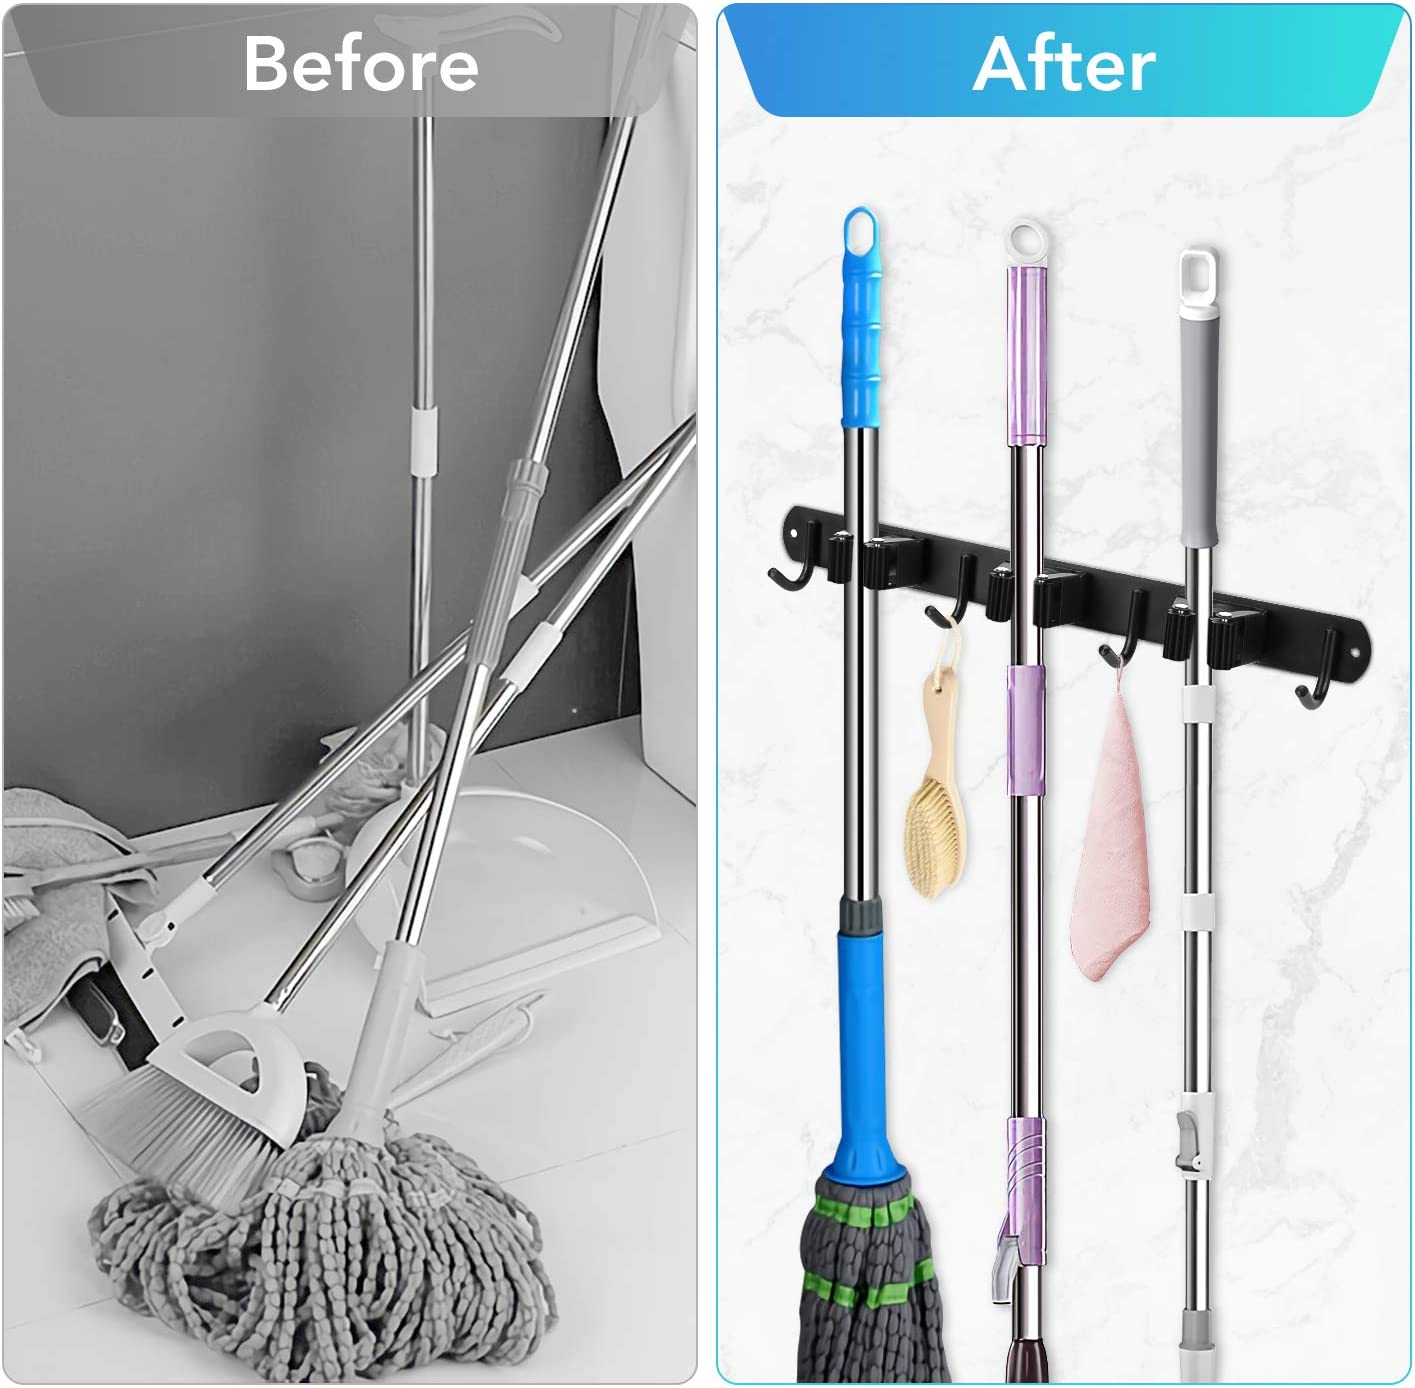 Mop Broom Holder Wall Mount 3 Racks 4 Hooks Stainless Steel Storage Hanger 3M Tape Nail-Free Glue Screws Drilling Installation Up to 66lb 2 Packs